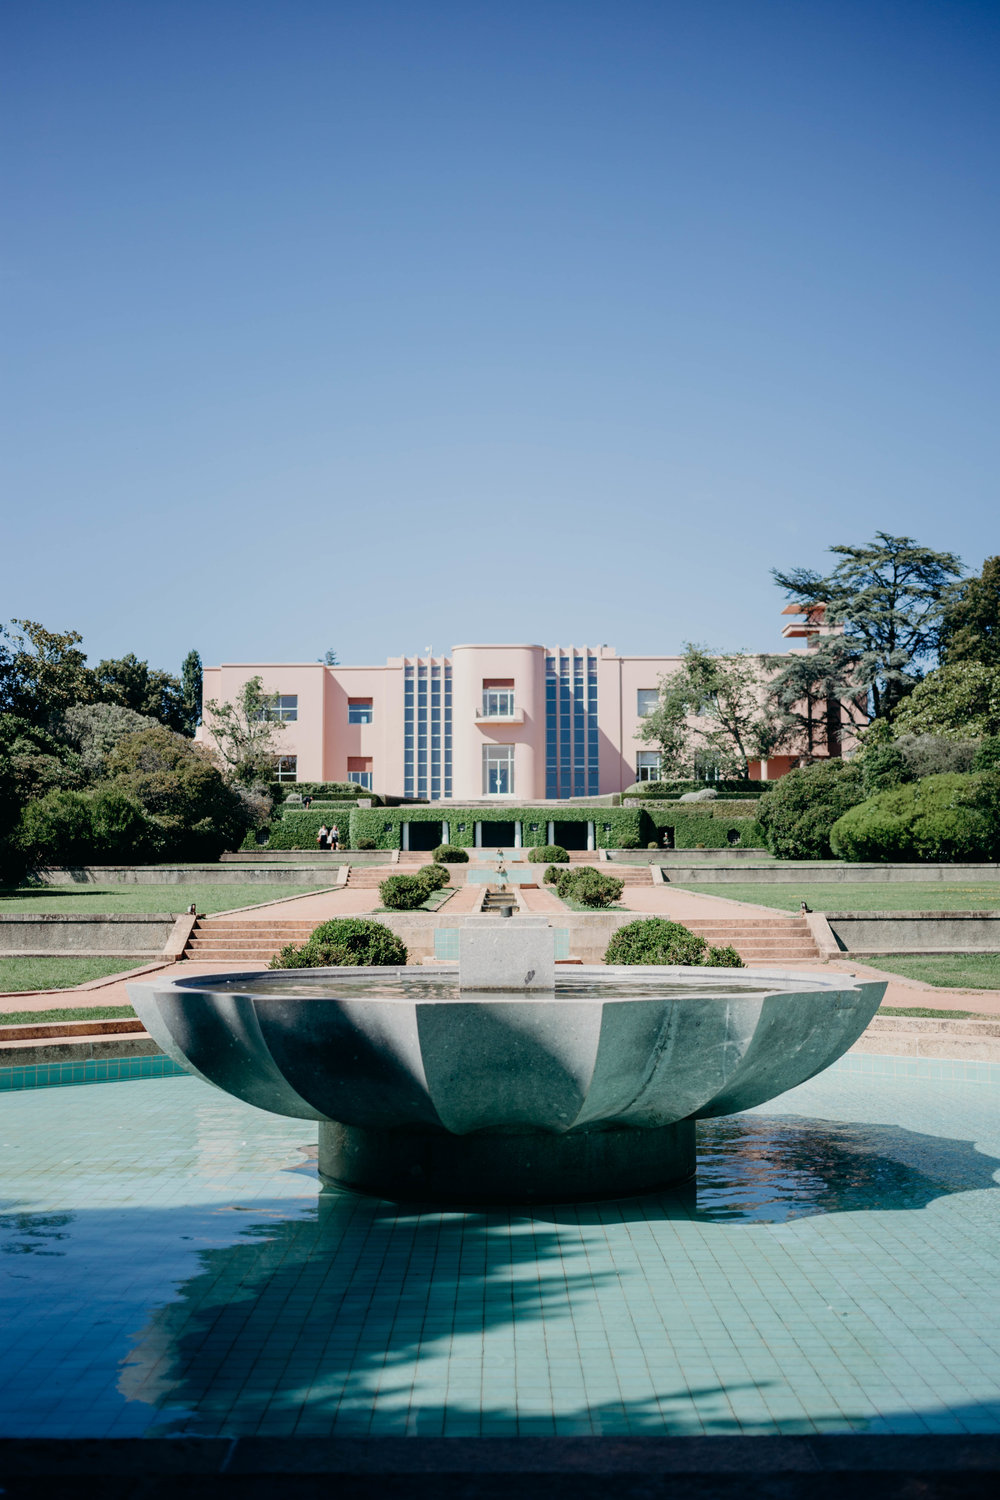 Our Portugal Travel Diary: Lisbon, Porto, and More | On the Street Where We Live (aretherelilactrees.com)  Serralves, Casa de Serralves